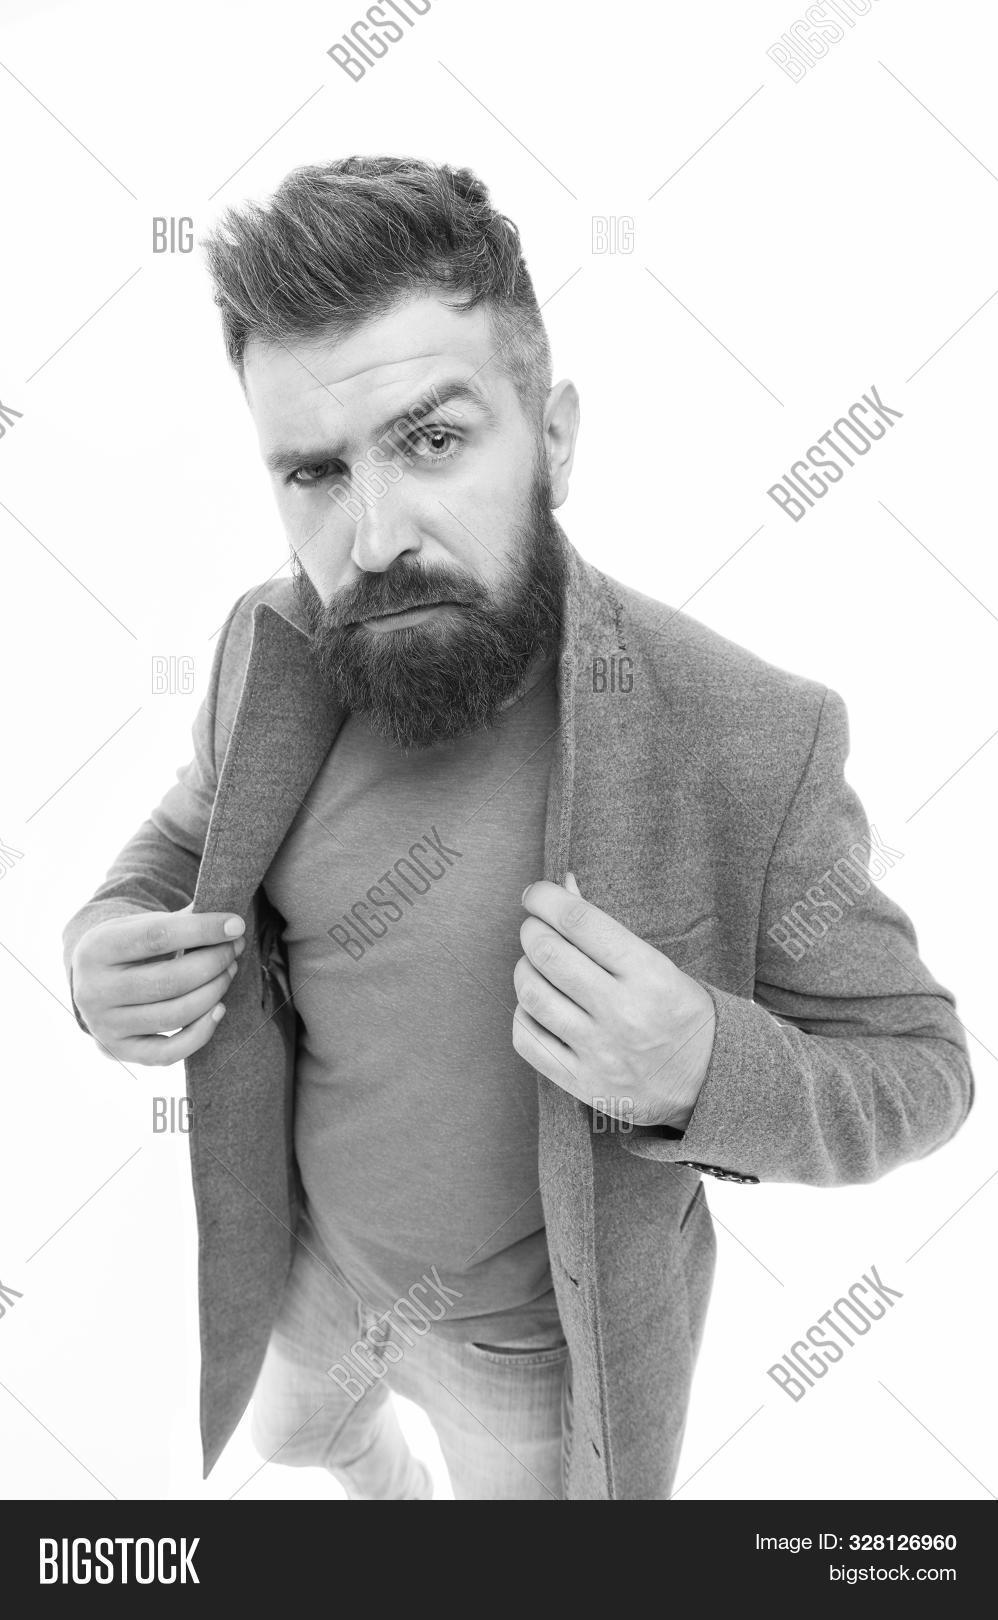 Stylish Casual Outfit. Bearded Hipster Stylish Fashionable Jacket. Man Wear Casual Jacket. Consultat